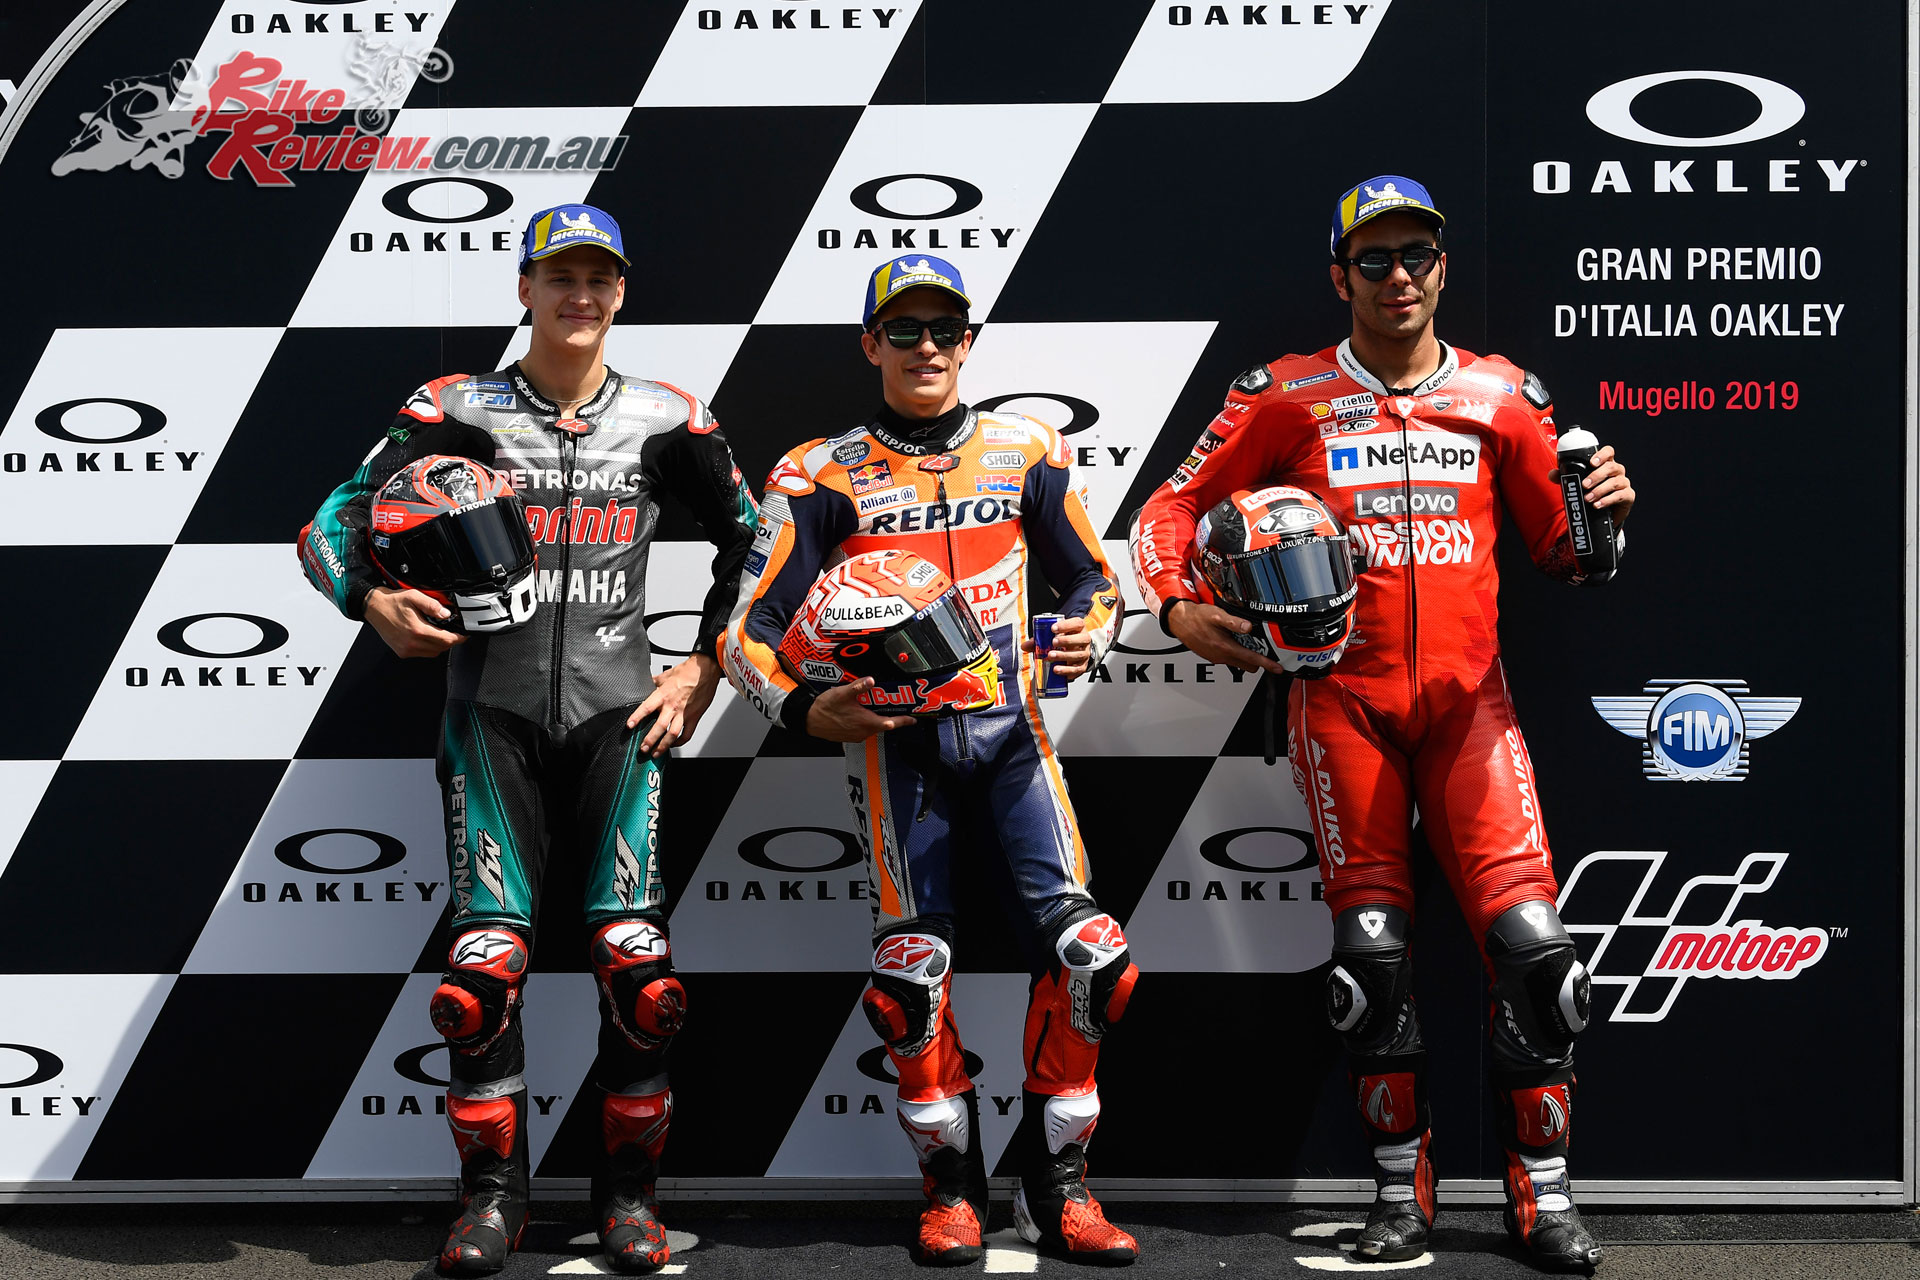 2019 MotoGP Mugello Qualifying Top 3 -